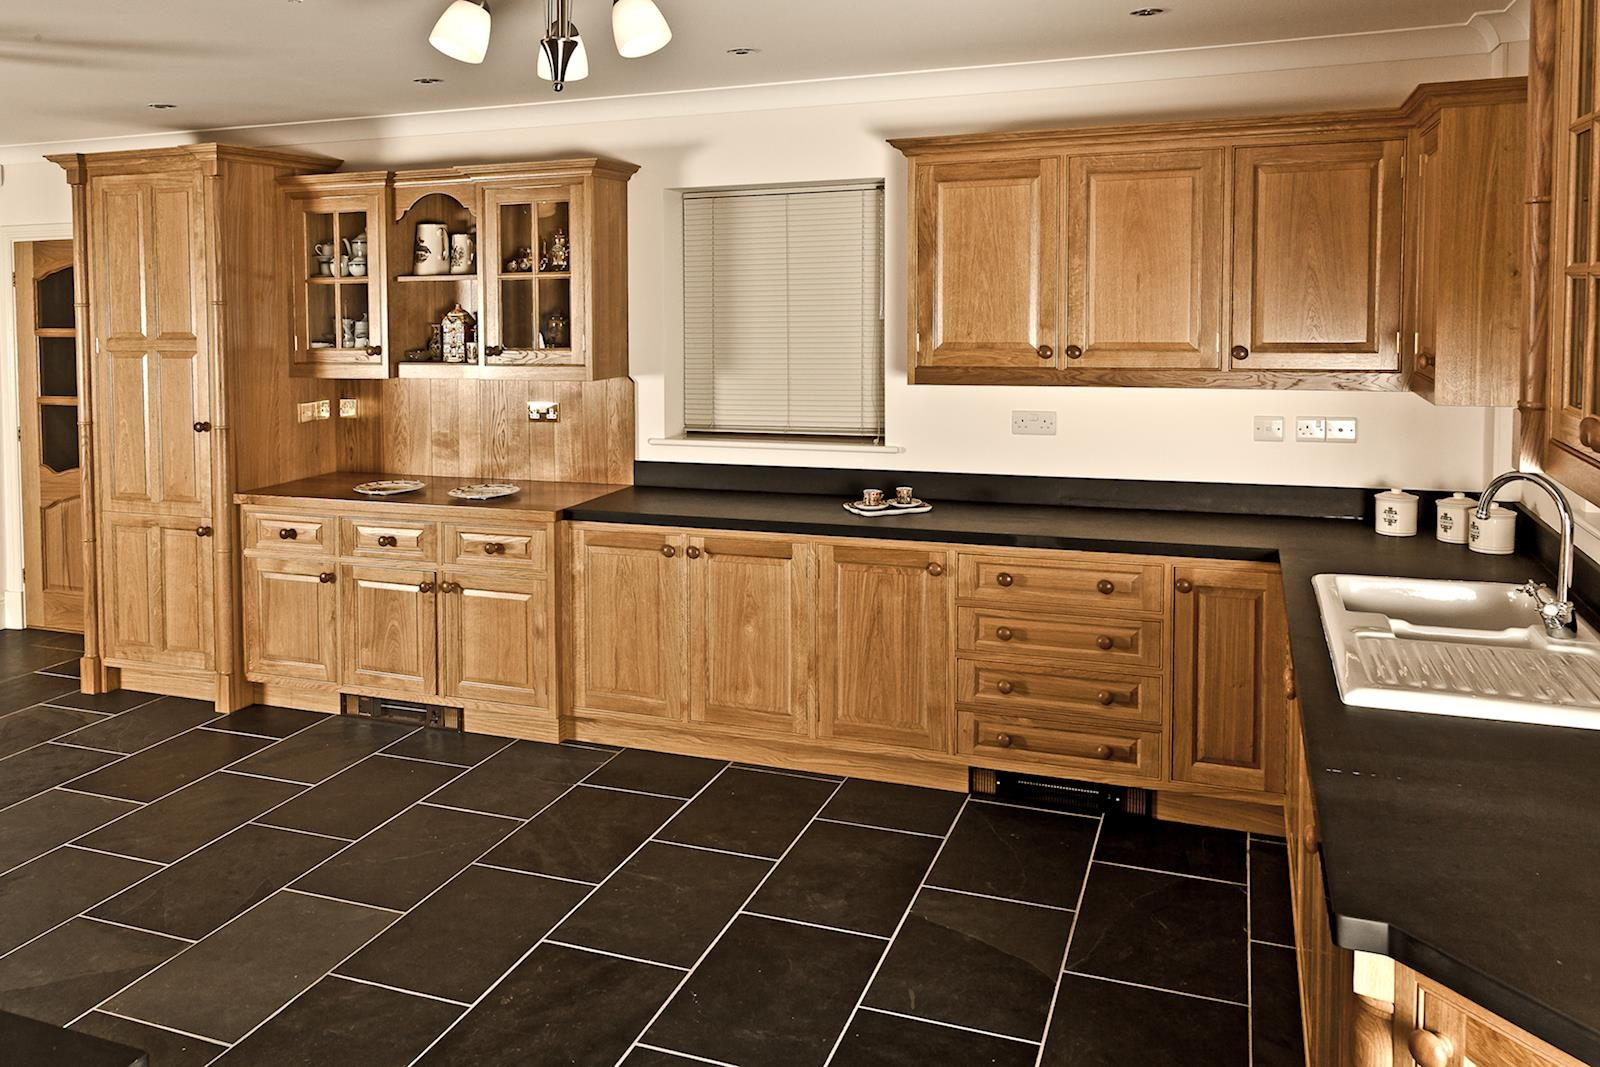 Oak Kitchen Pembrokeshire Mark Stone 39 S Welsh Kitchens Bespoke Kitchens And Furnuture Made In